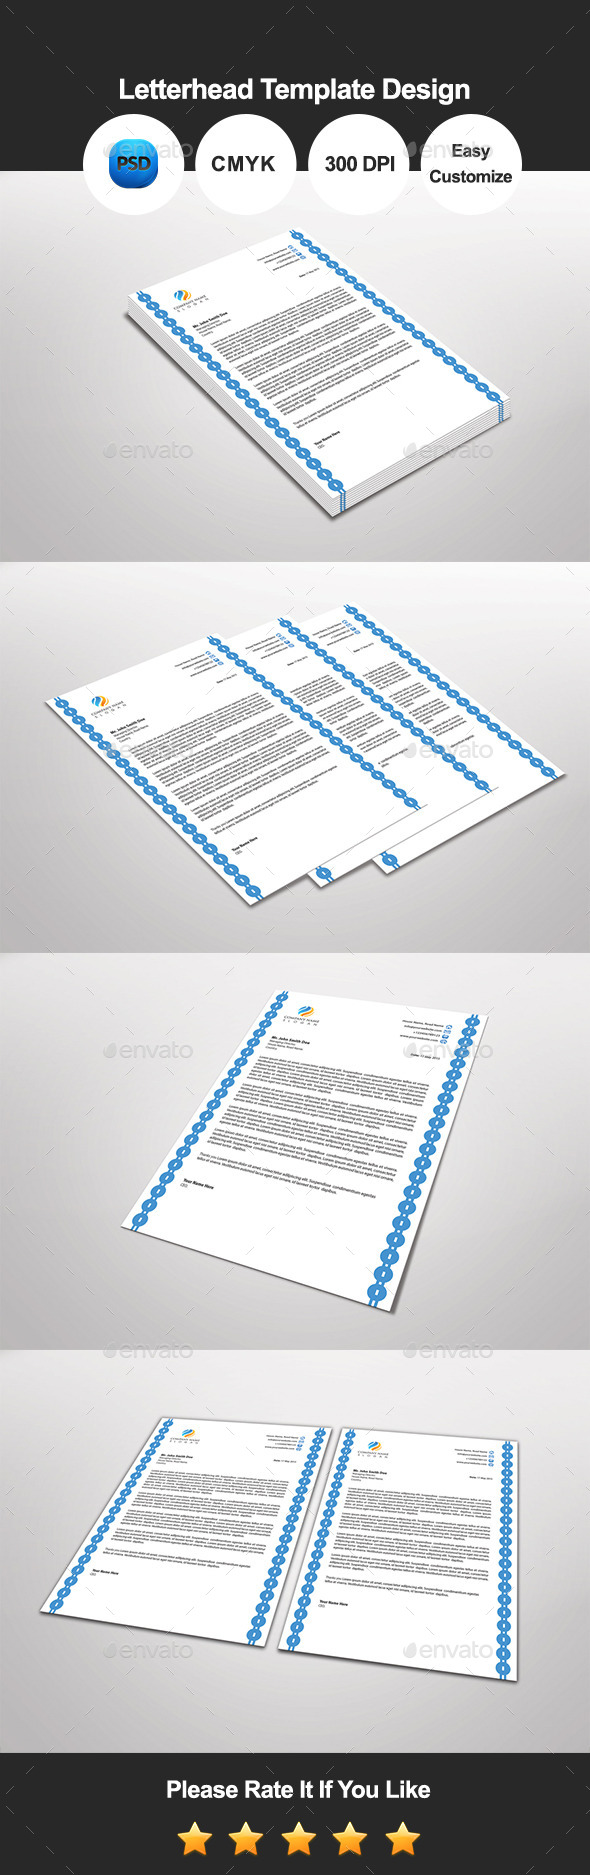 Renflex Letterhead Template Design - Proposals & Invoices Stationery